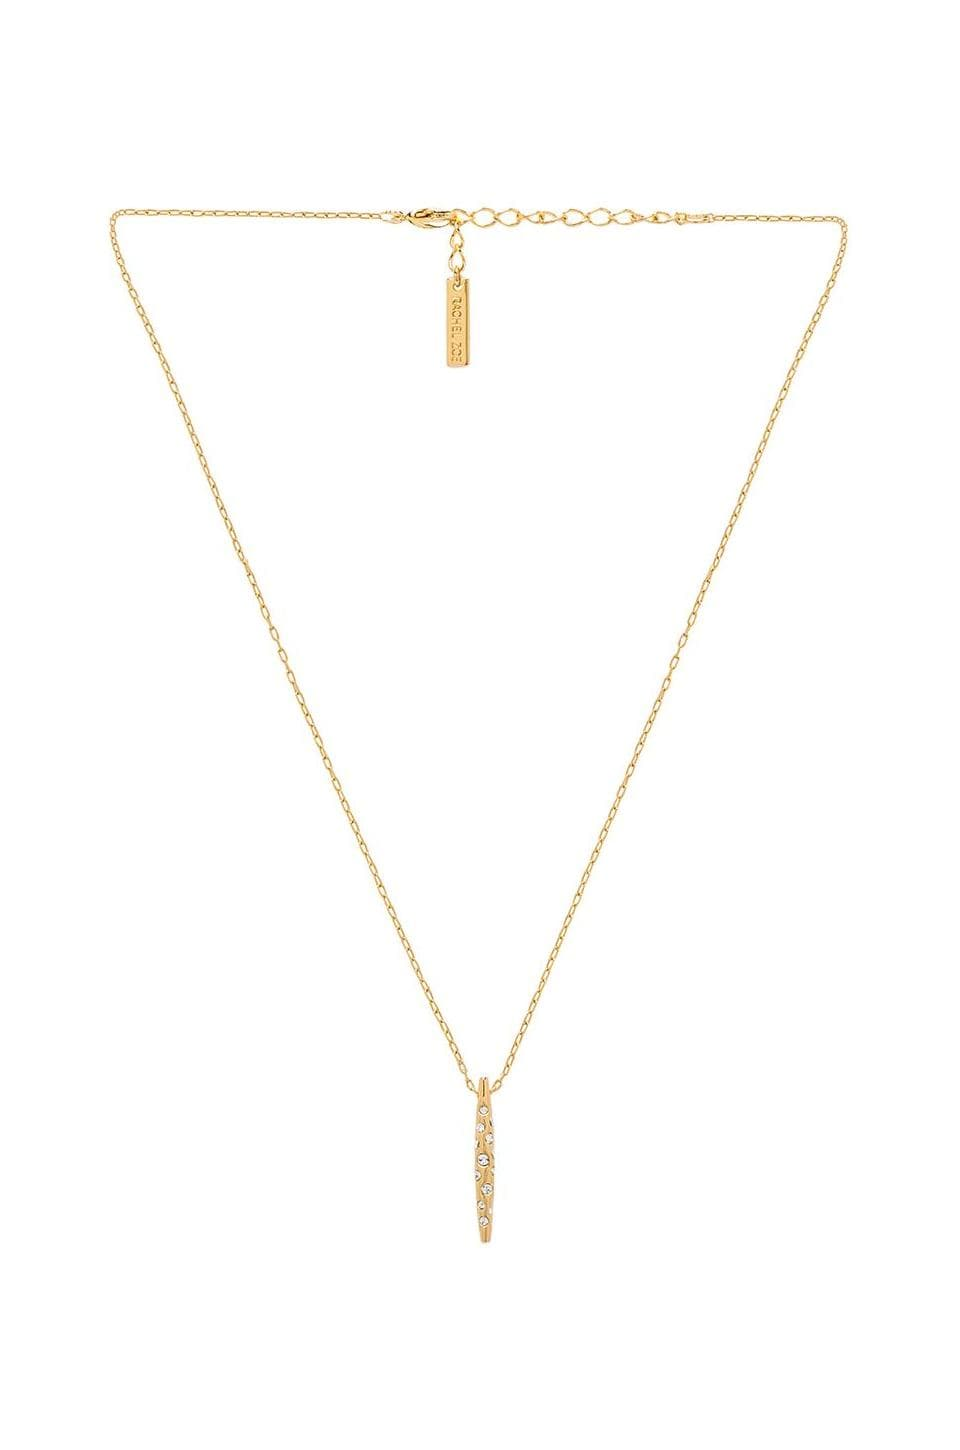 RACHEL ZOE Mini Pave Quill Drop Necklace in Gold & Crystal